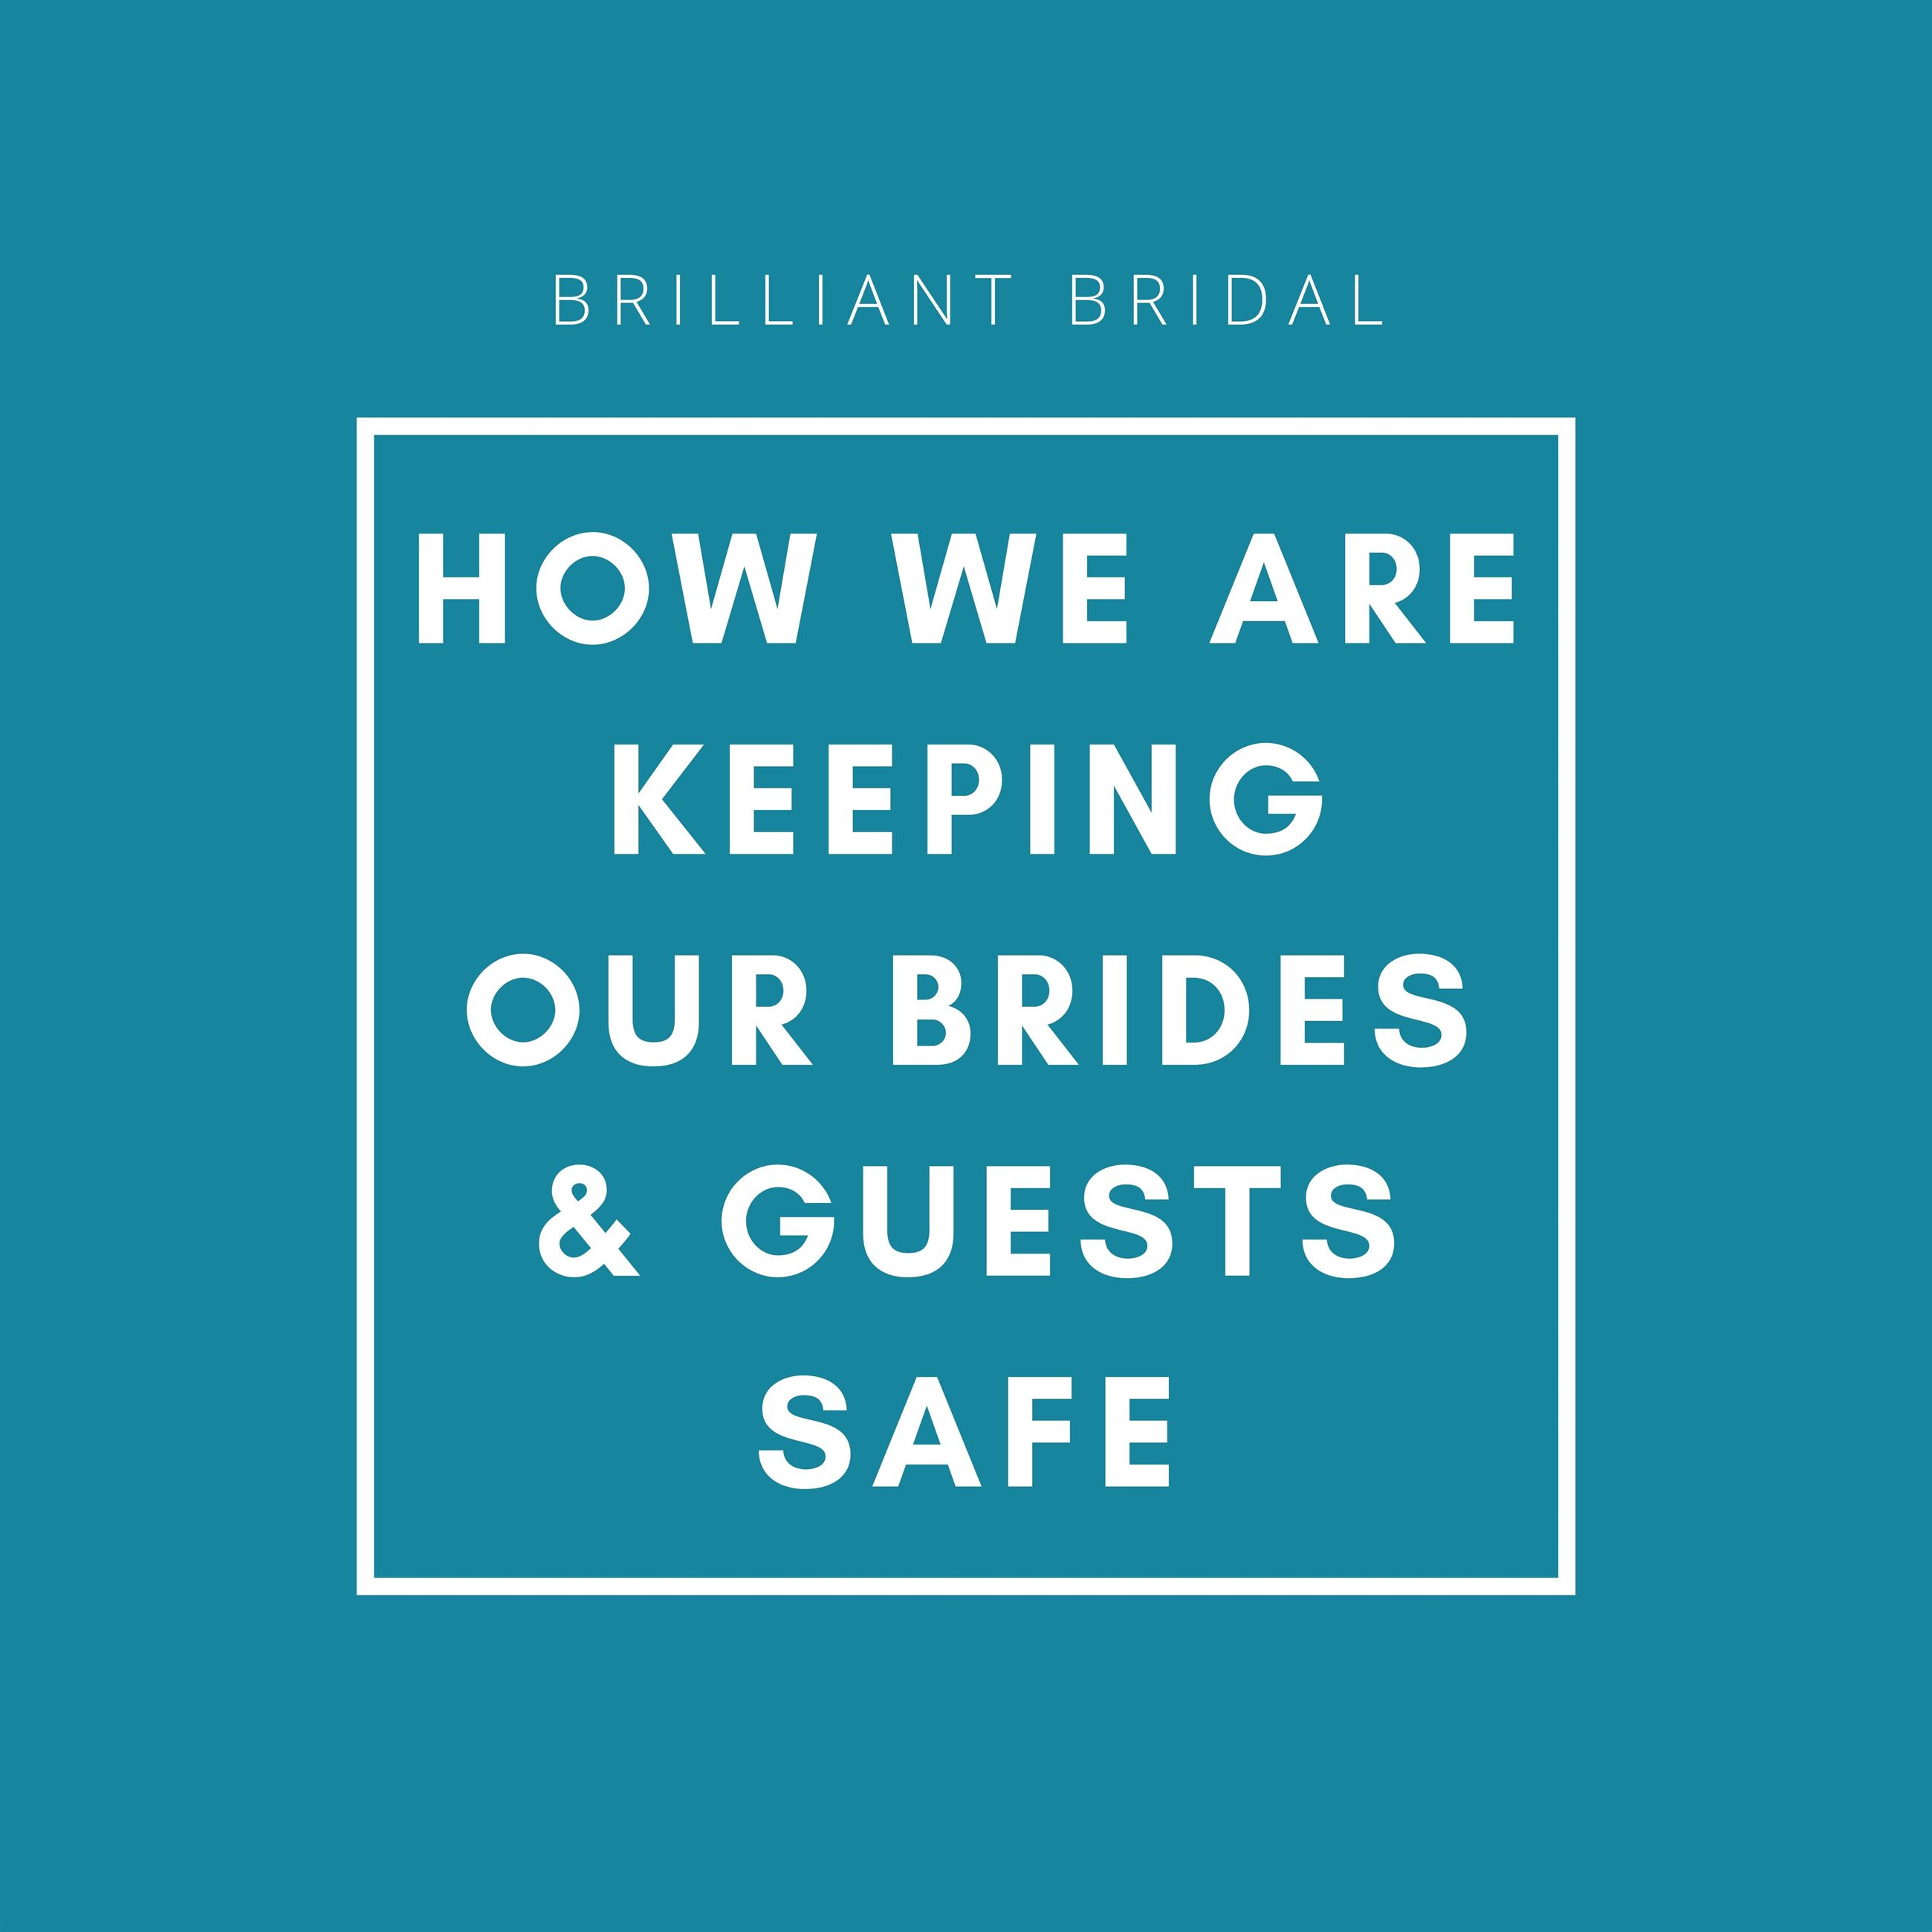 How we are keeping our brides & guests safe. Desktop Image